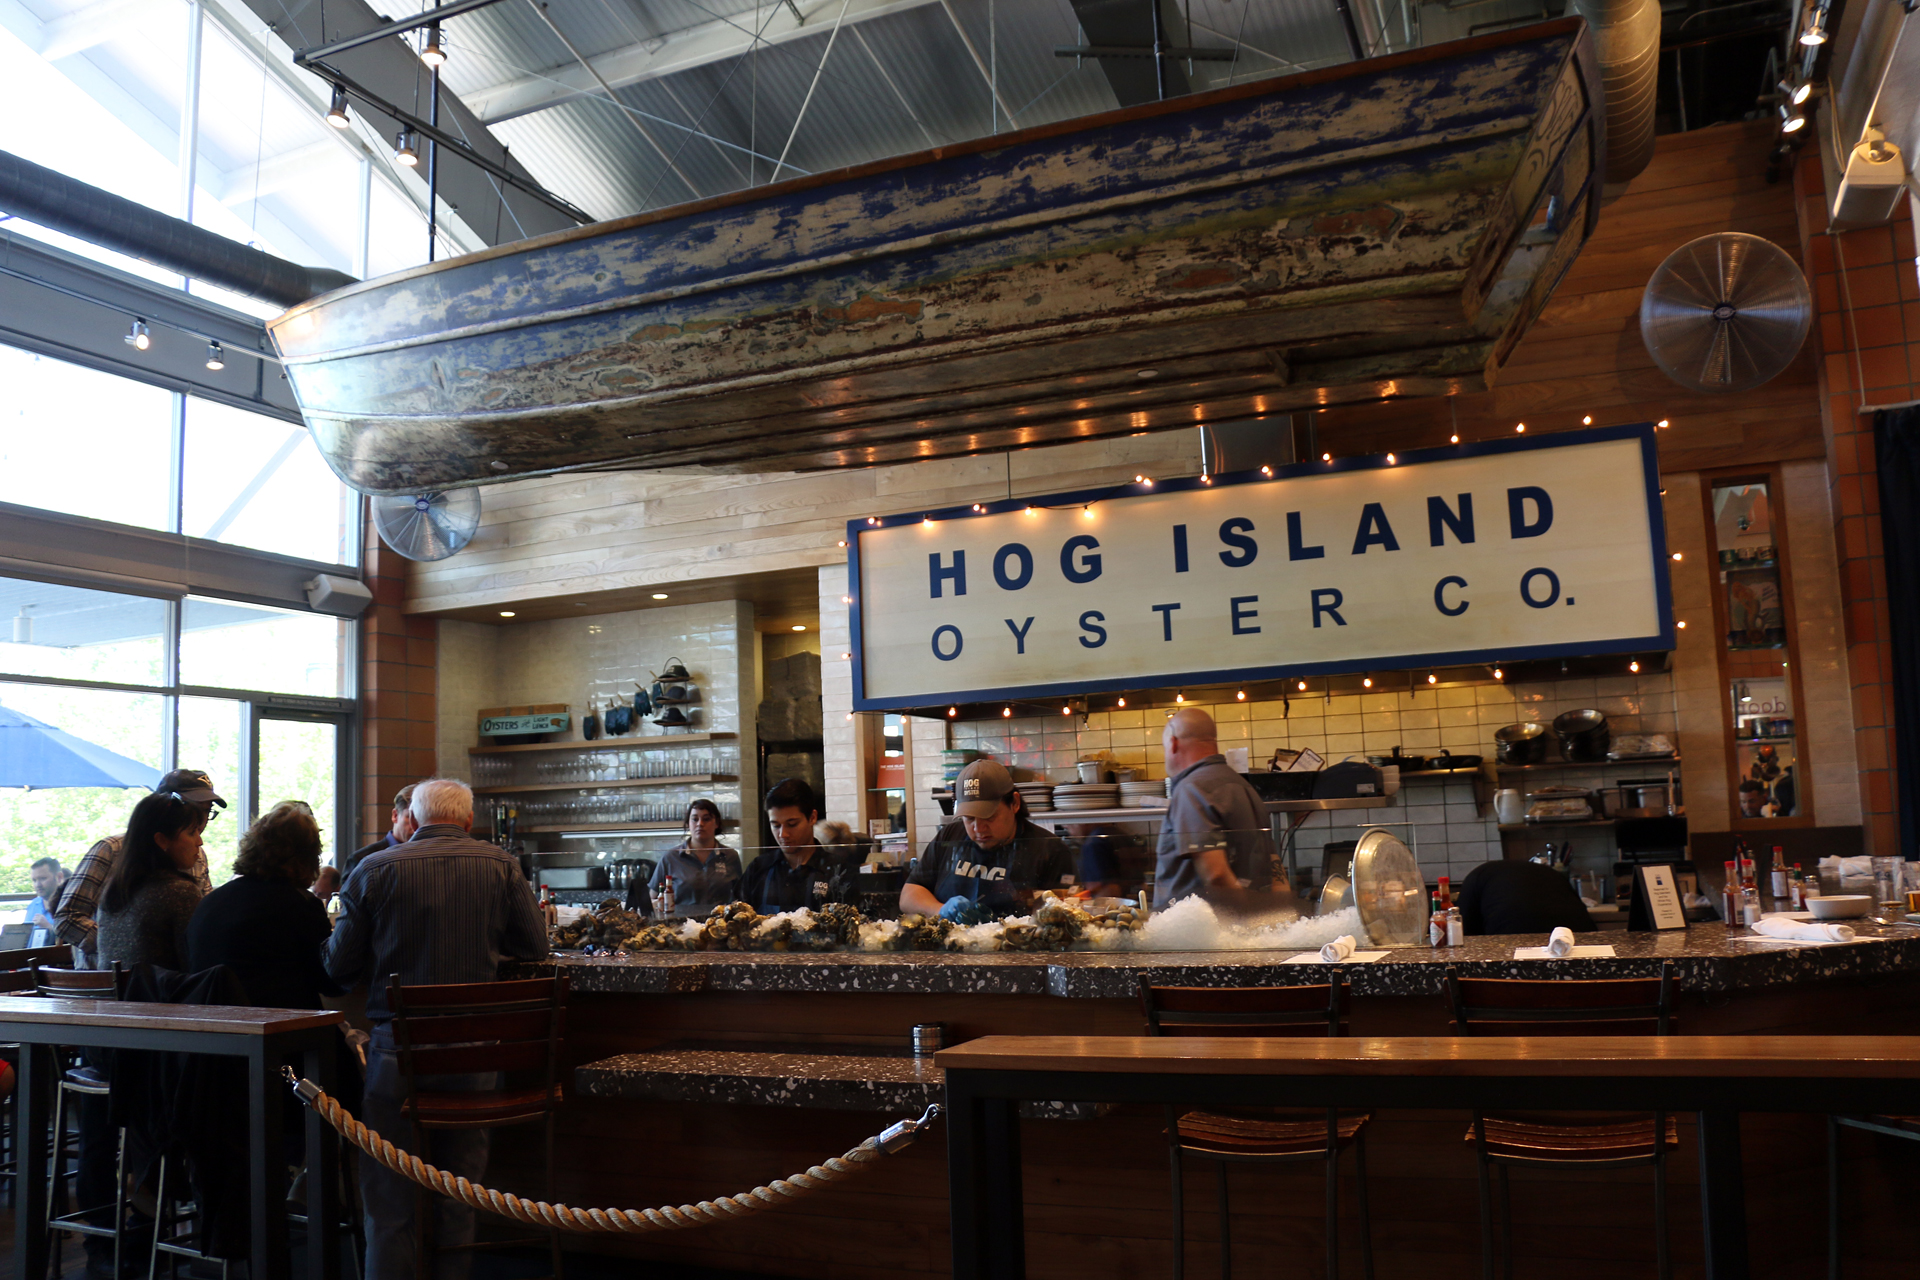 The oyster bar at Hog Island Oyster Co.